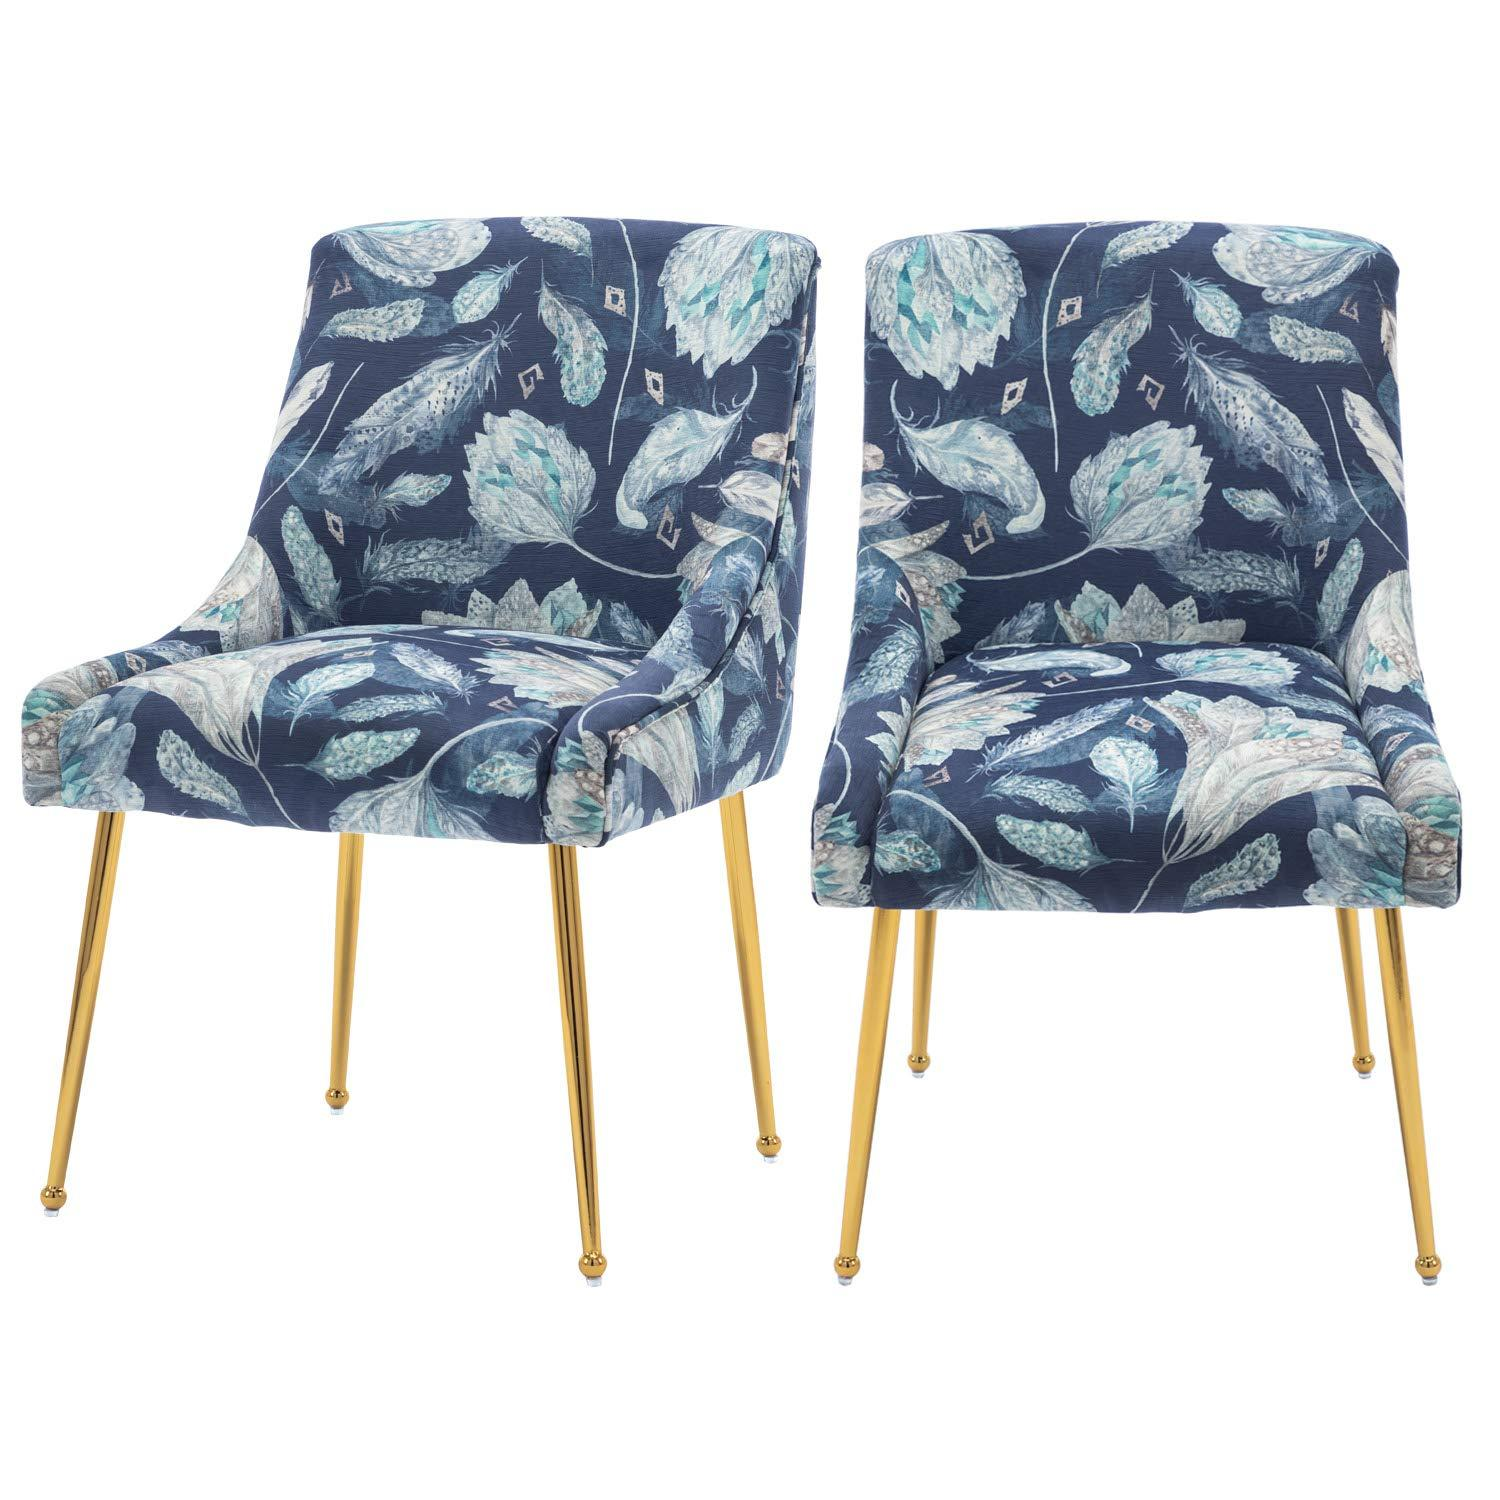 Luxe Regal Velvet Dining Arm Chairs Gold Metal Legs Black Blue Grey Patterned